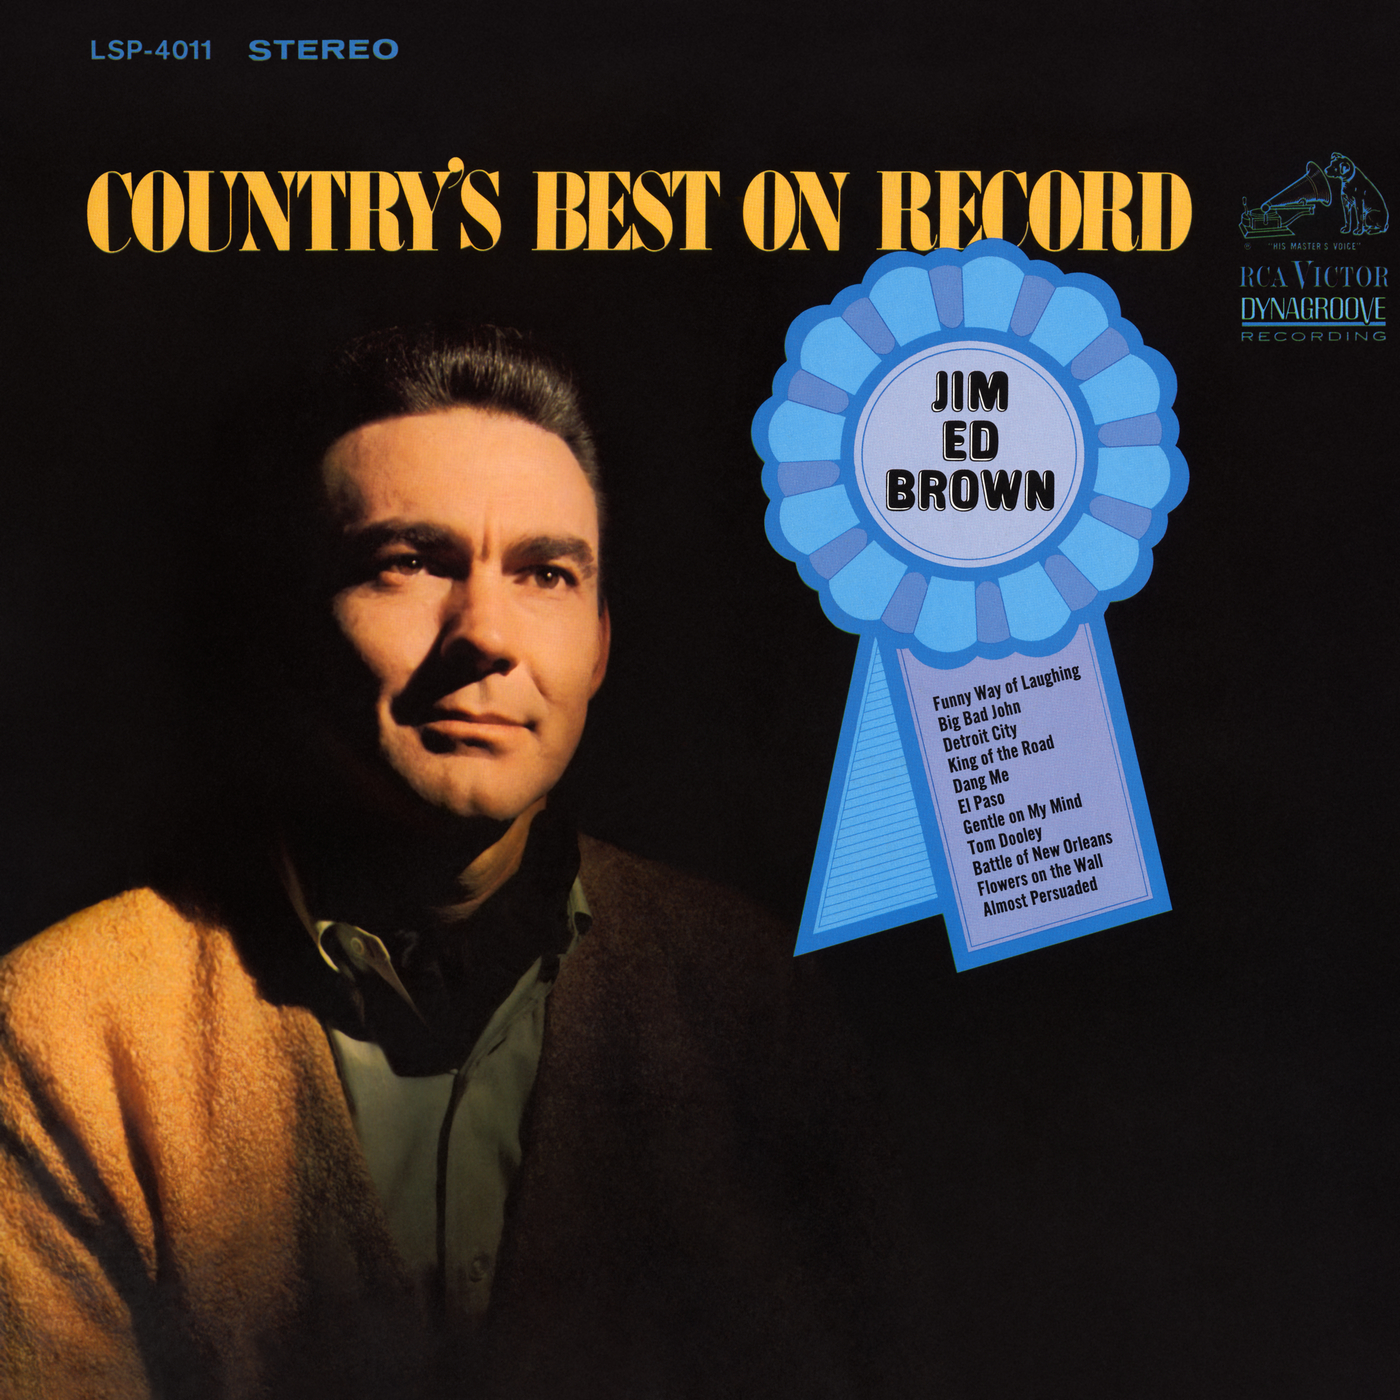 Country's Best On Record - Jim Ed Brown